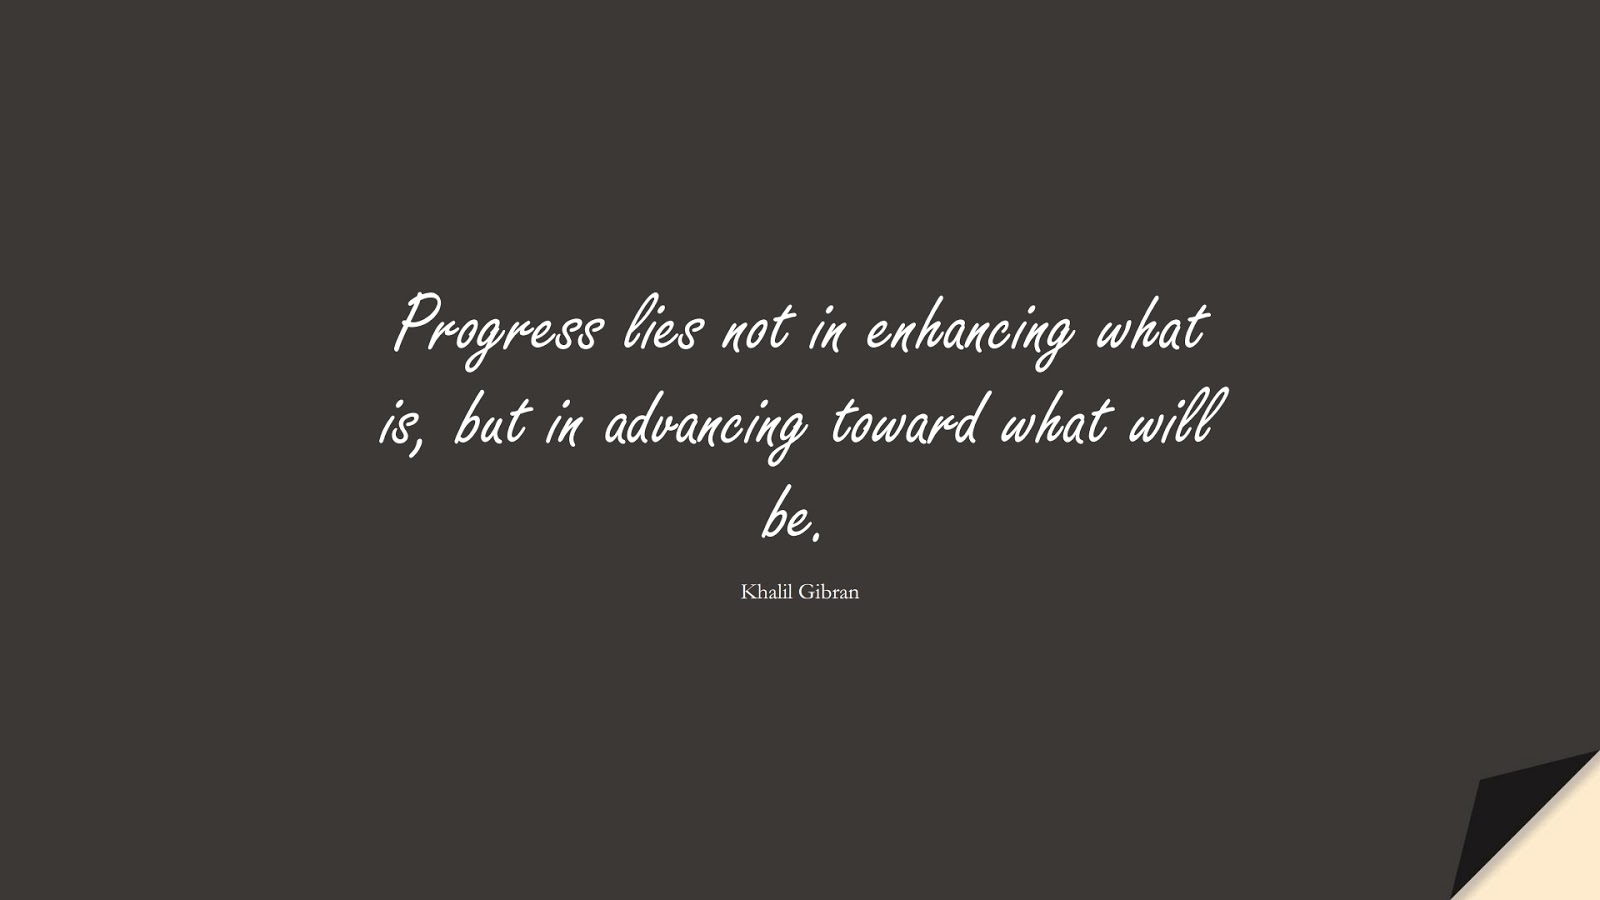 Progress lies not in enhancing what is, but in advancing toward what will be. (Khalil Gibran);  #InspirationalQuotes